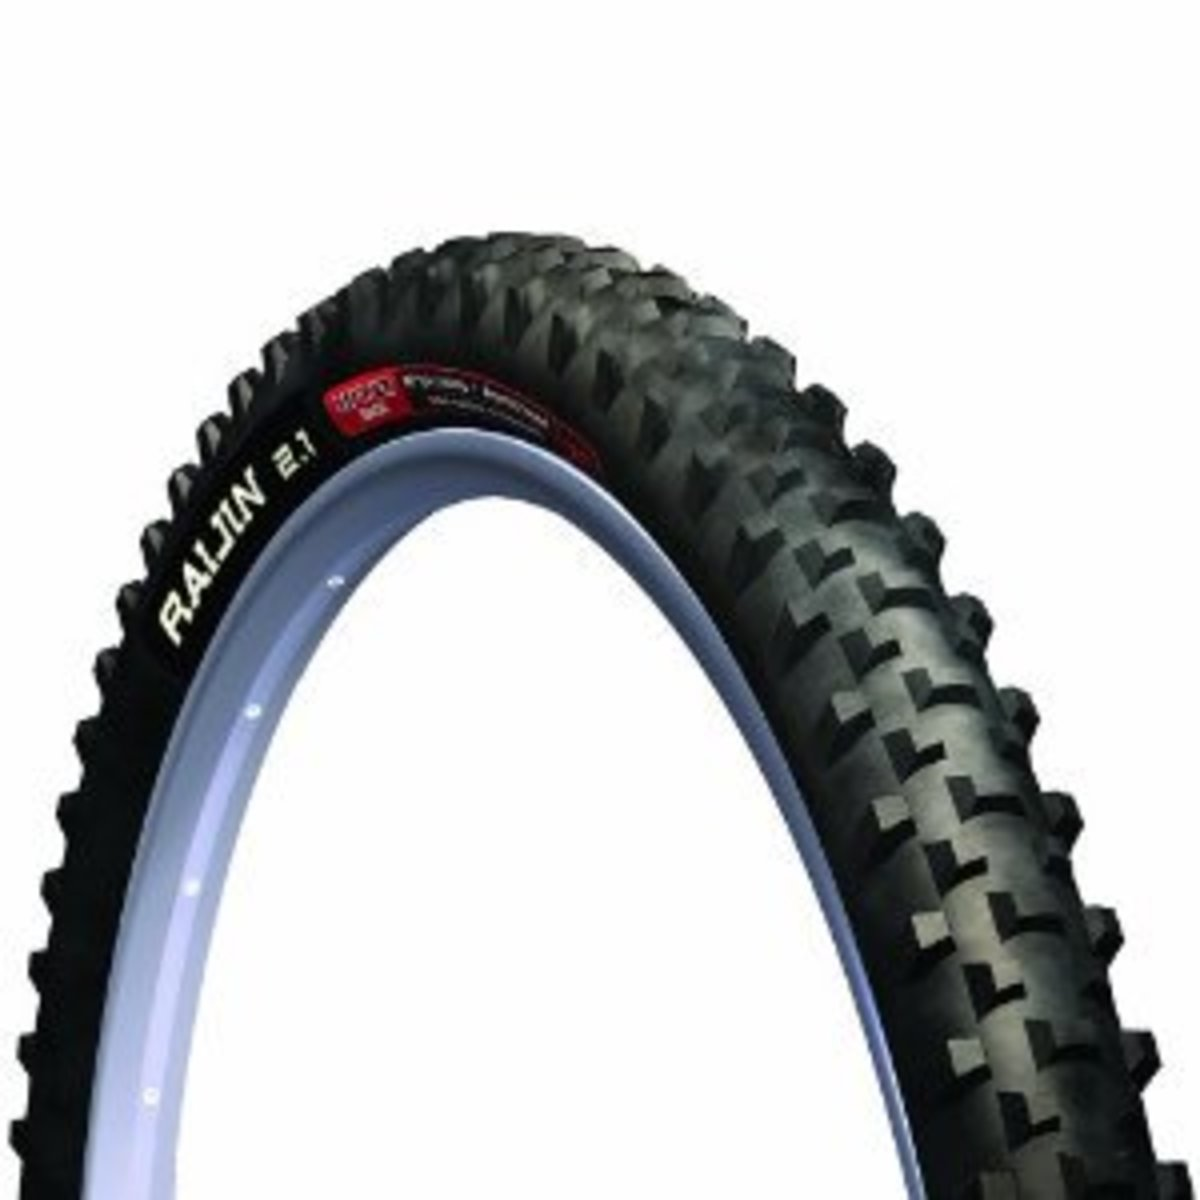 WTB Raijin mountain bike tires for muddy conditions cyclocross racing